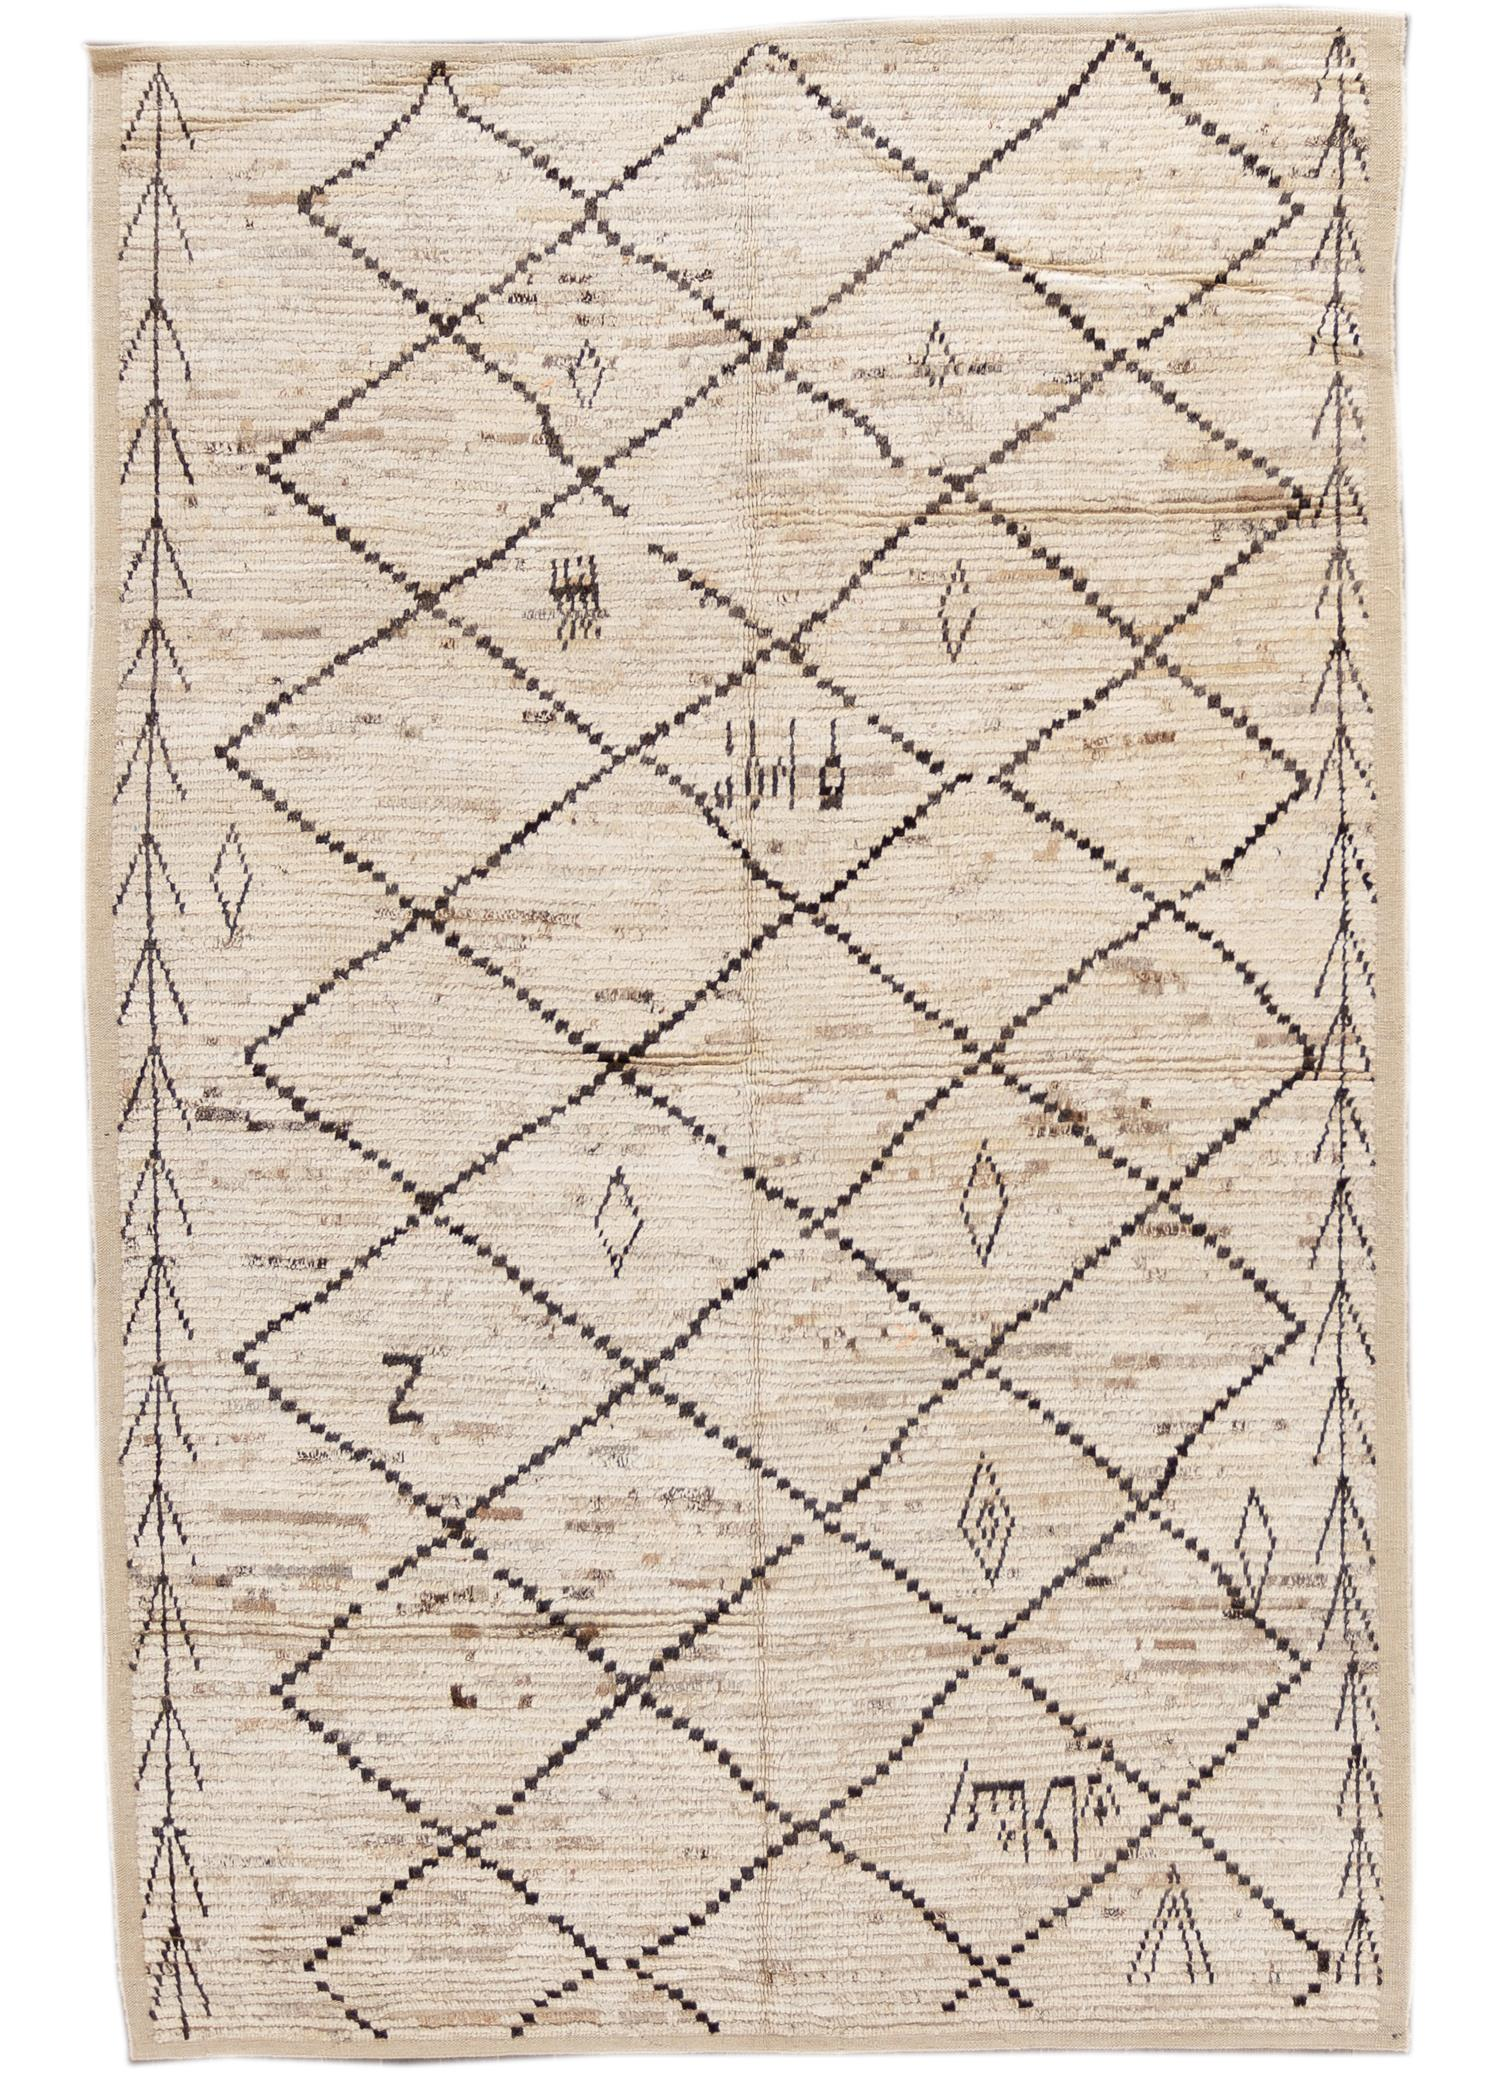 21st Century Modern Moroccan Style Rug, 6' x 10'